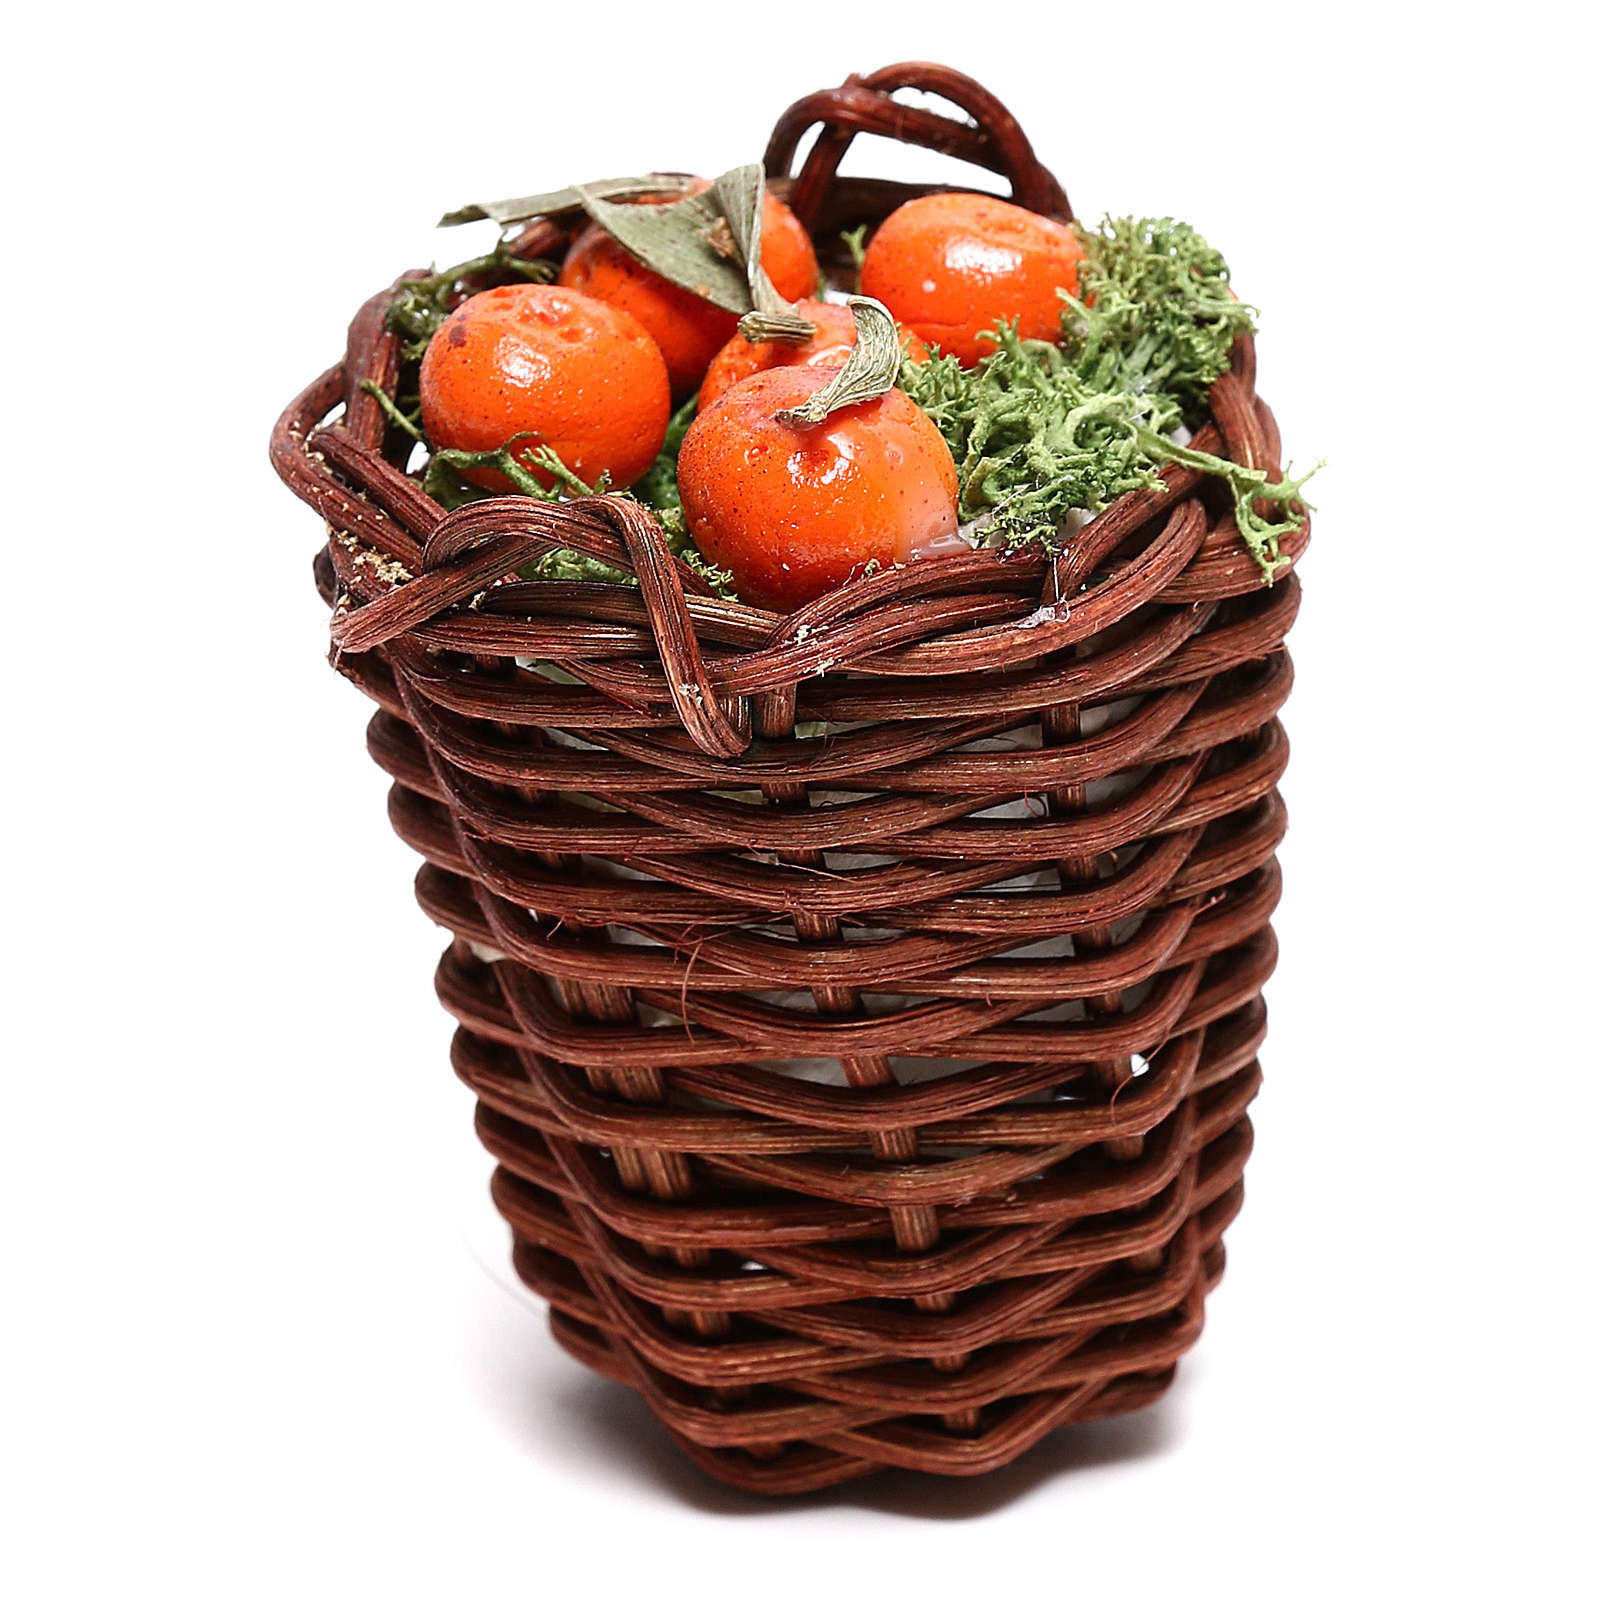 Long basket with oranges for Neapolitan Nativity scene of 24 cm 4